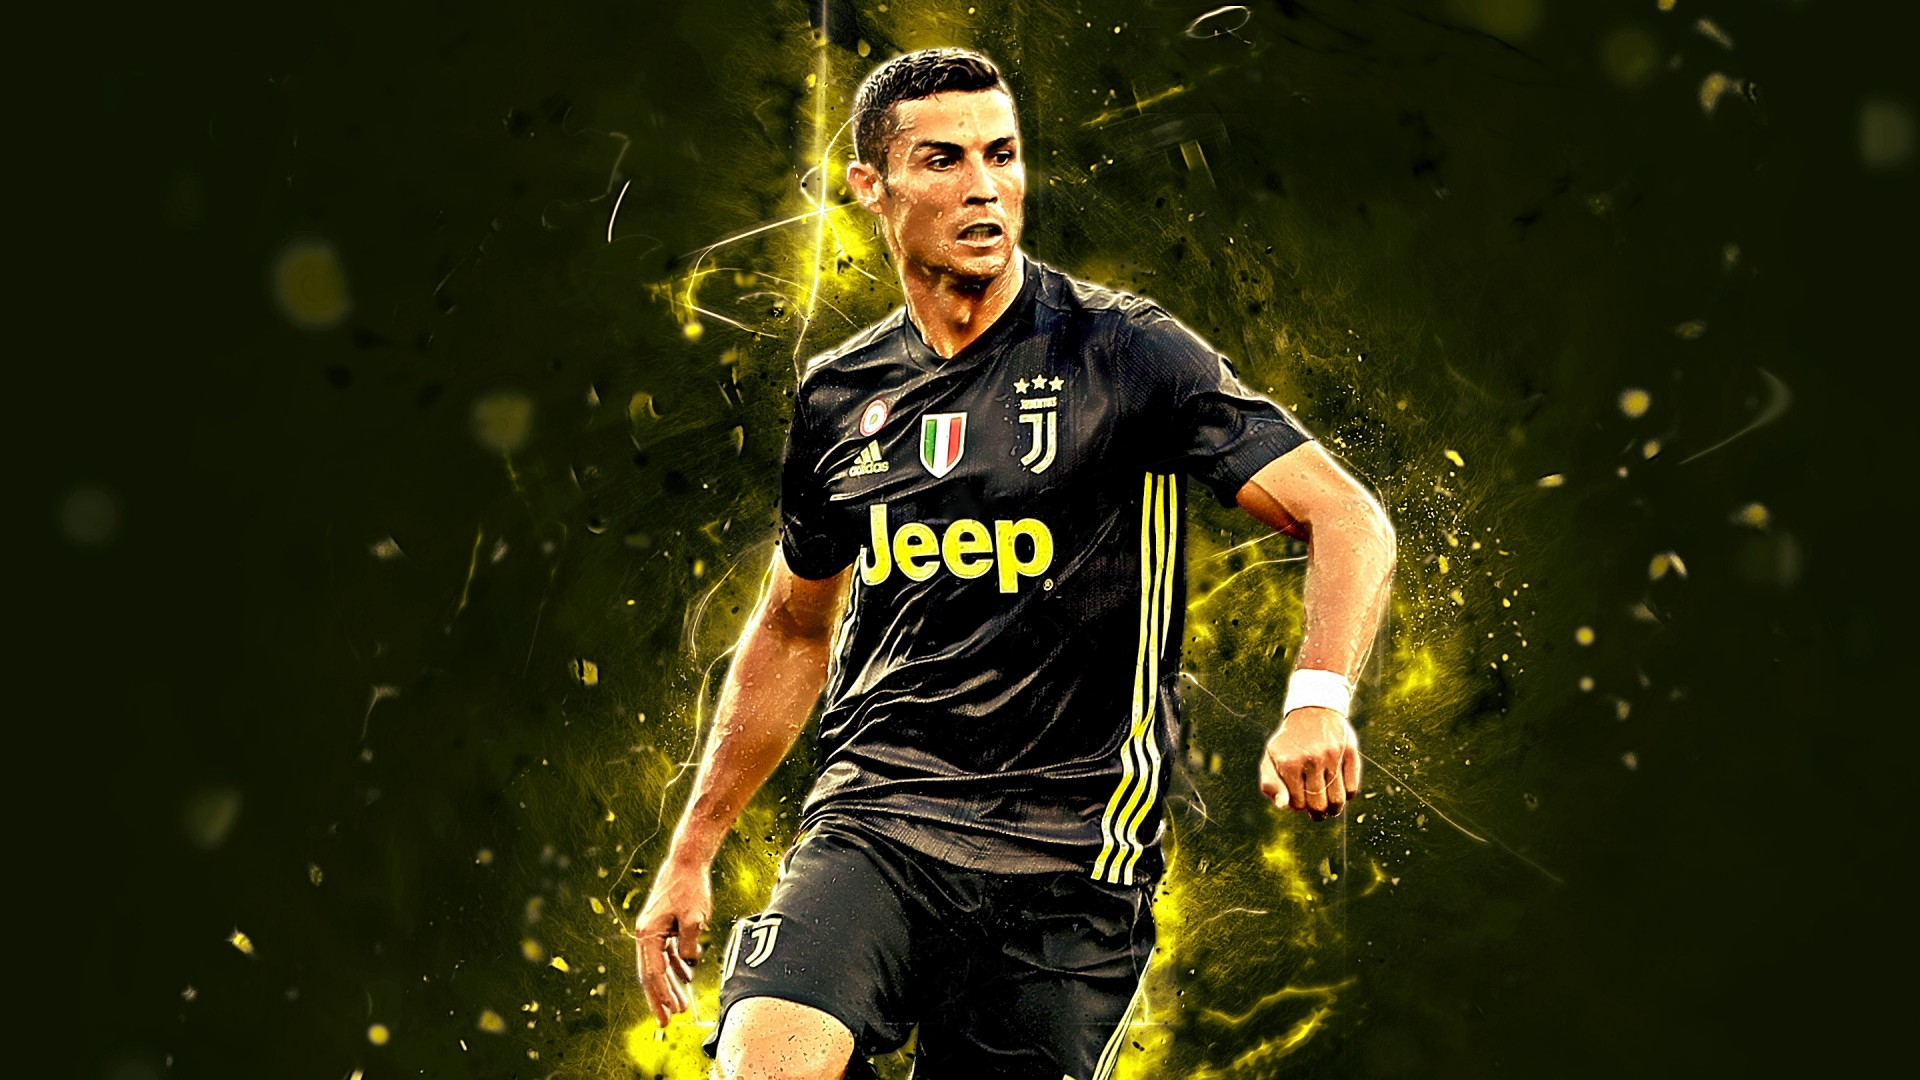 Best Iphone 5 Home Screen Wallpapers Cristiano Ronaldo Wallpapers Hd Wallpapers Id 26365